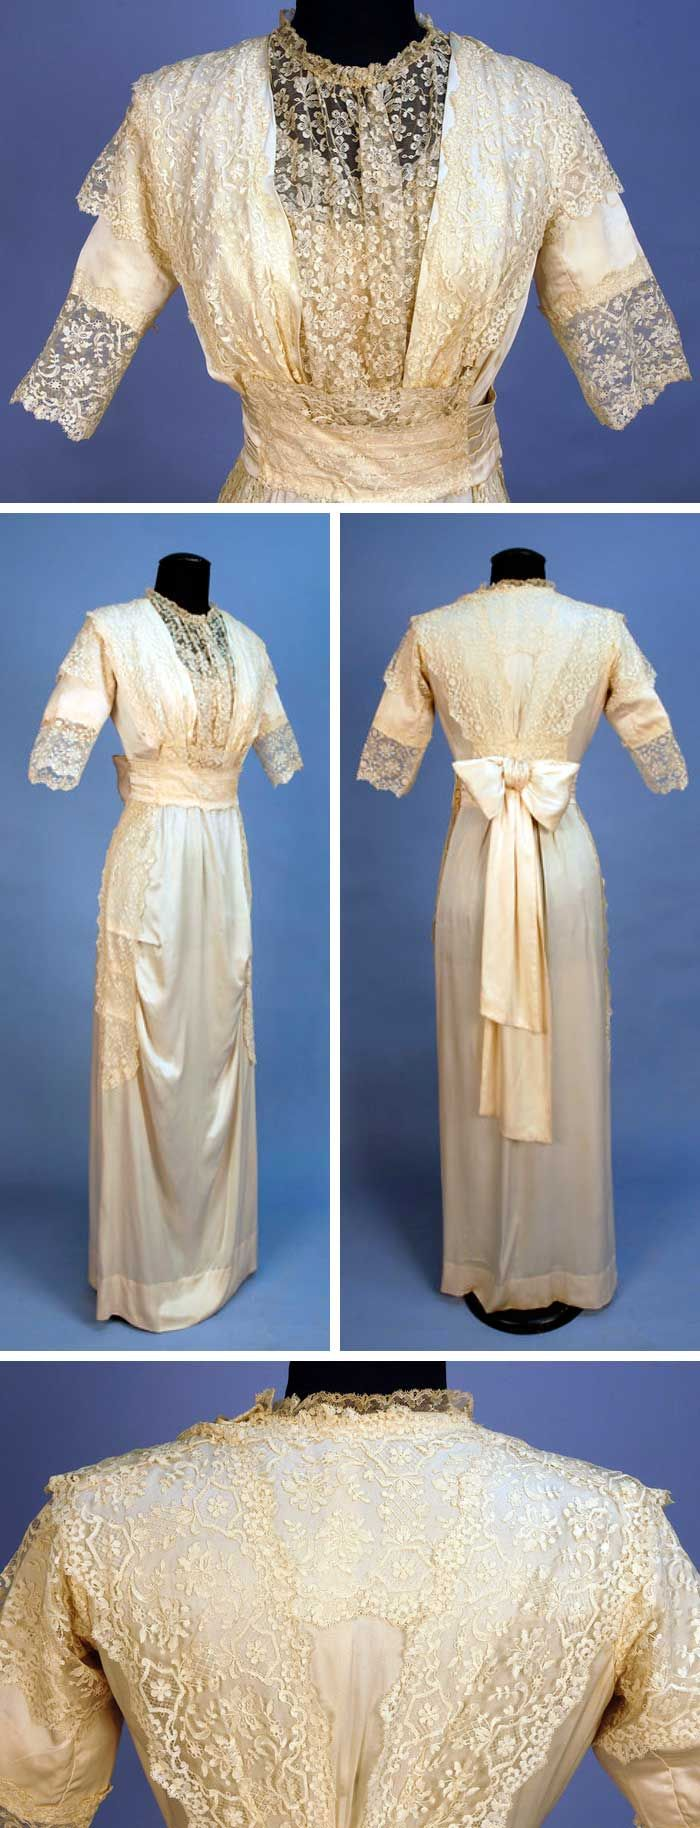 Gown, A & M O'Connor, Philadelphia, date unknown. Ivory charmeuse with elbow-length sleeves and pleated cummerbund with back bow. Skirt with front horizontal tucks. Embroidered lace on net decorates bodice, sleeves, and sides of skirt. Charles A. Whitaker Auctions